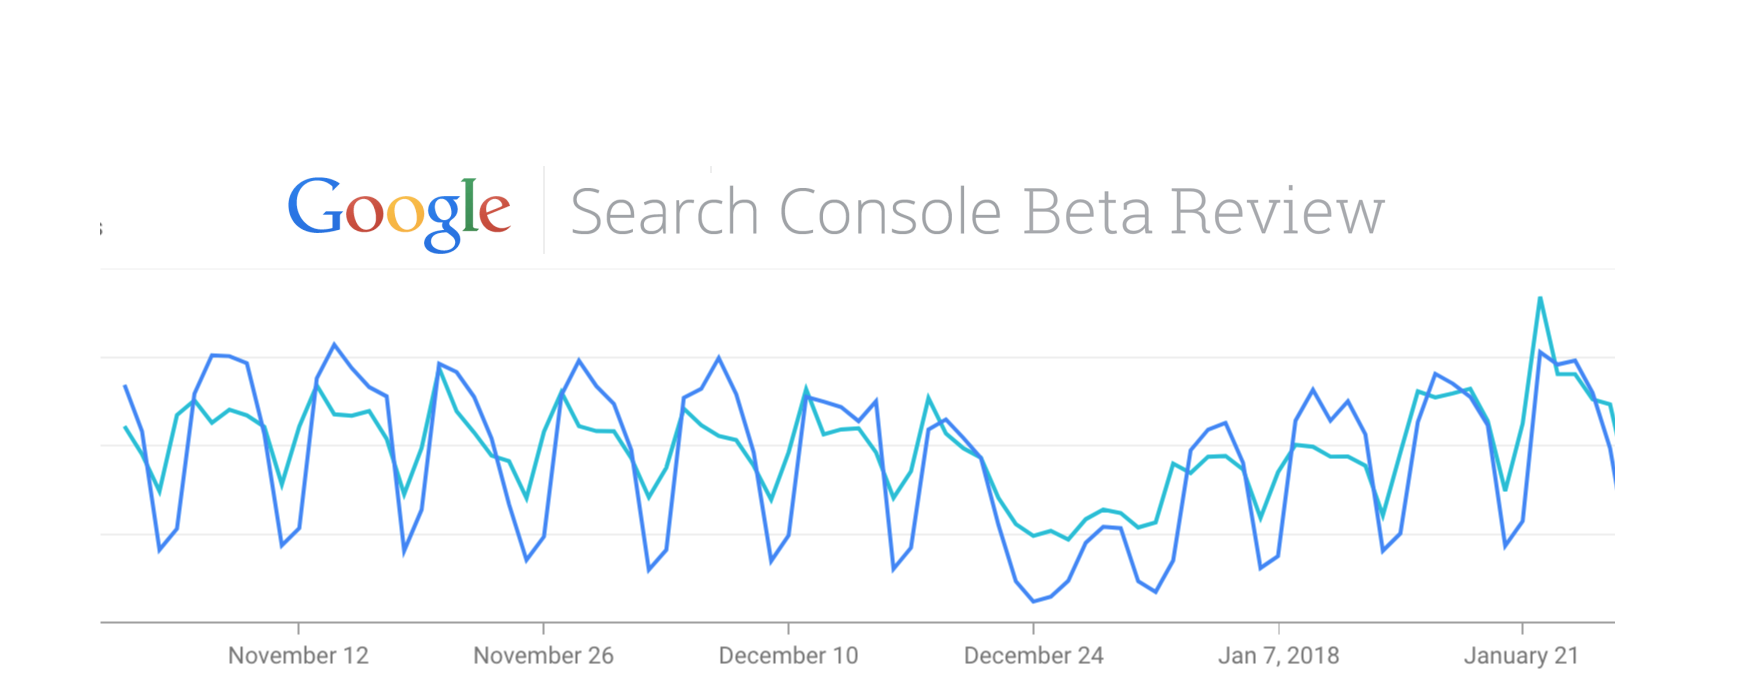 Google Search Console Beta Review